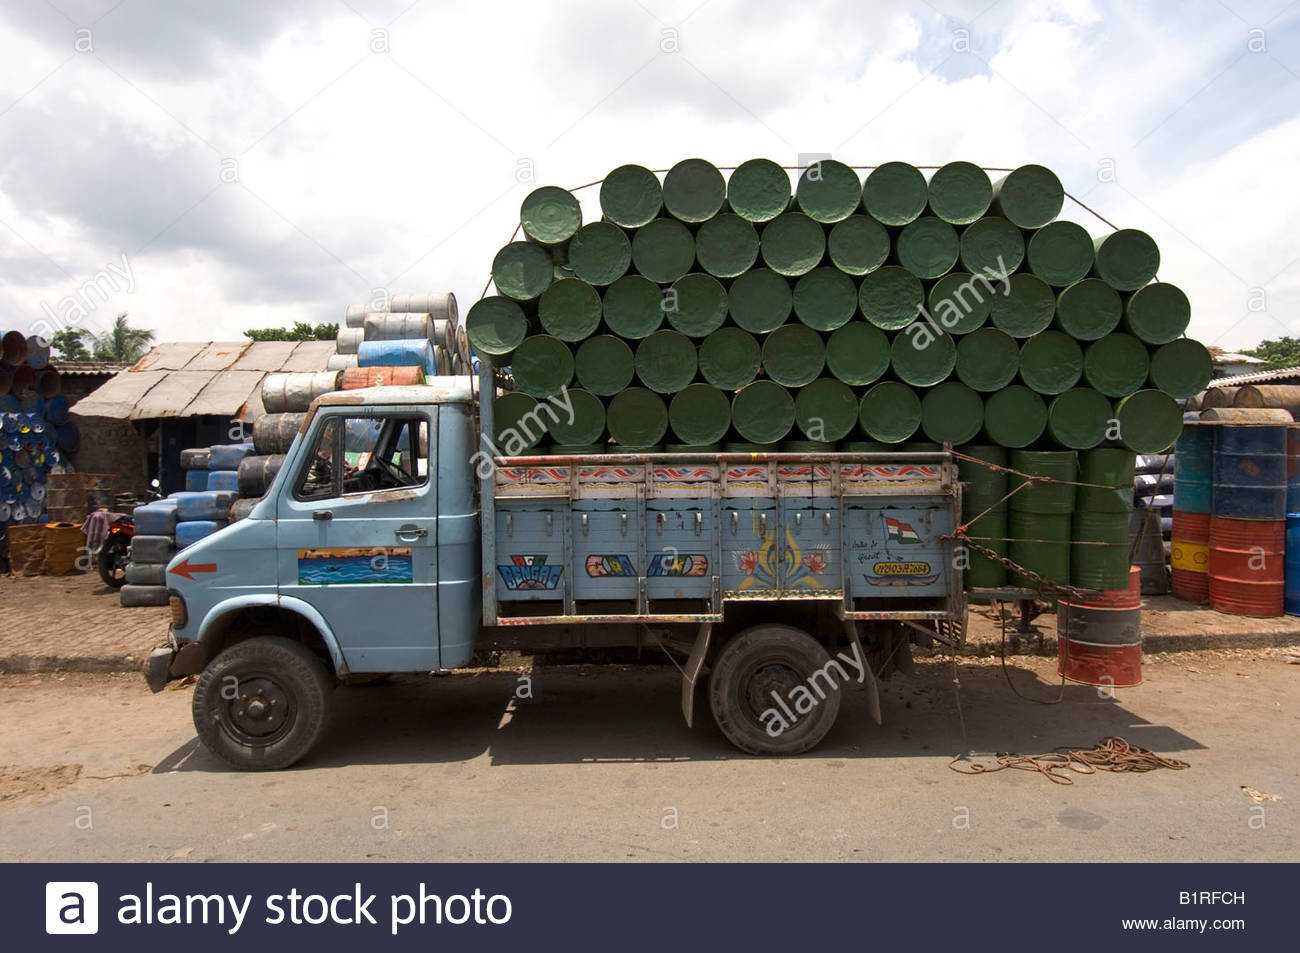 waste-processing-truck-loaded-with-newly-beaten-out-recycled-barrels-B1RFCH.jpg